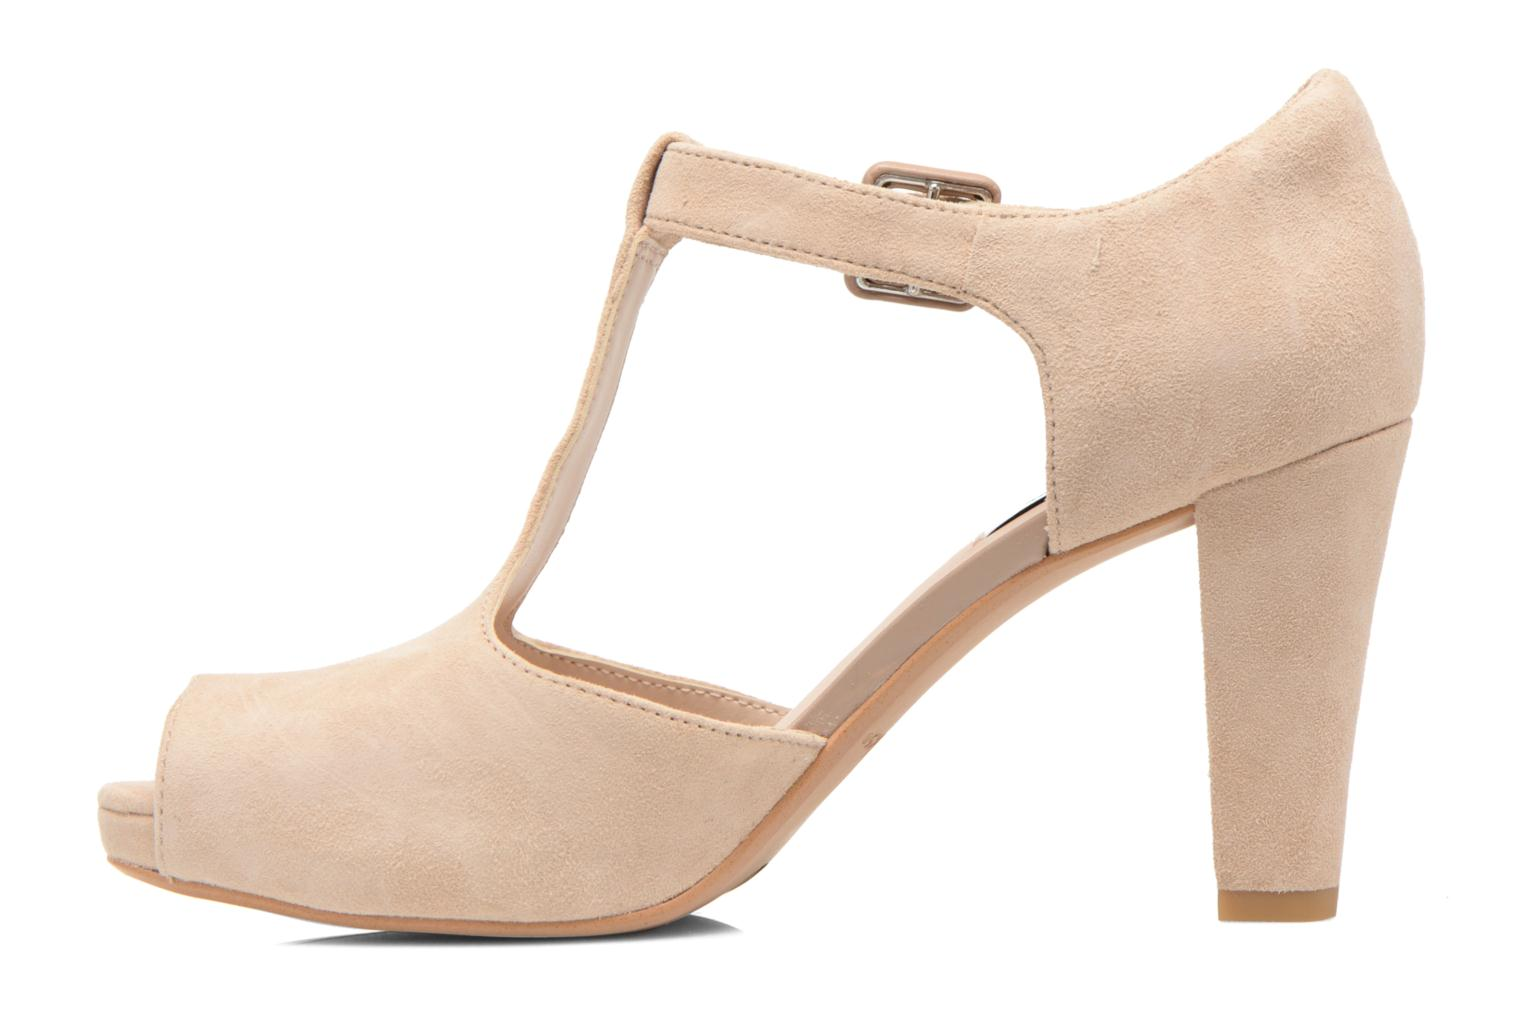 Kendra Flower Sand Suede